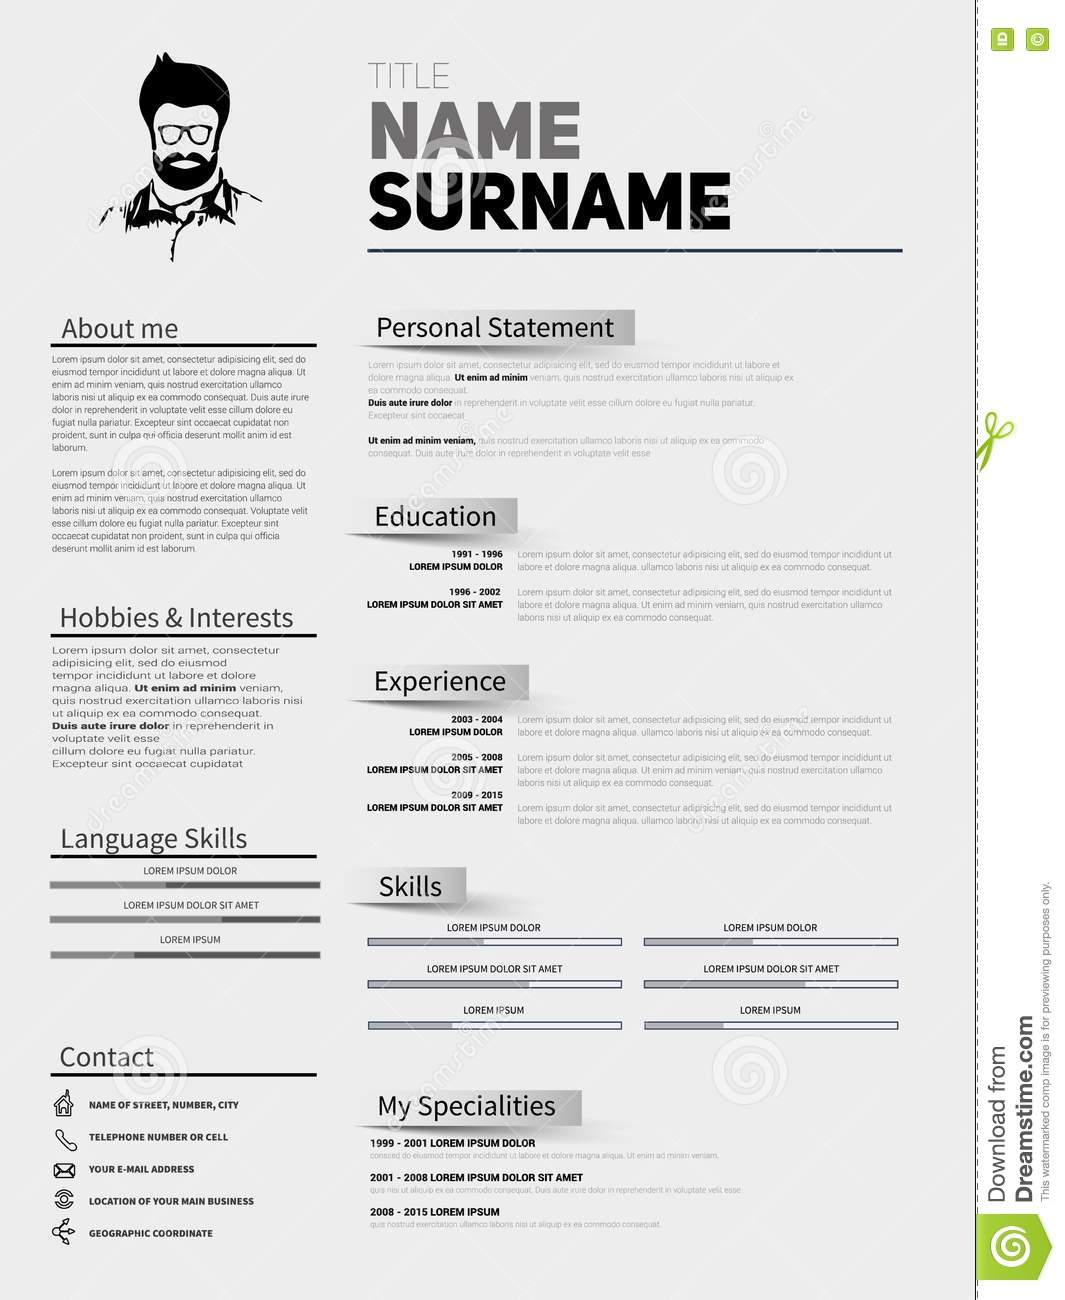 resume minimalist cv  resume template with simple design  company application cv  curriculum